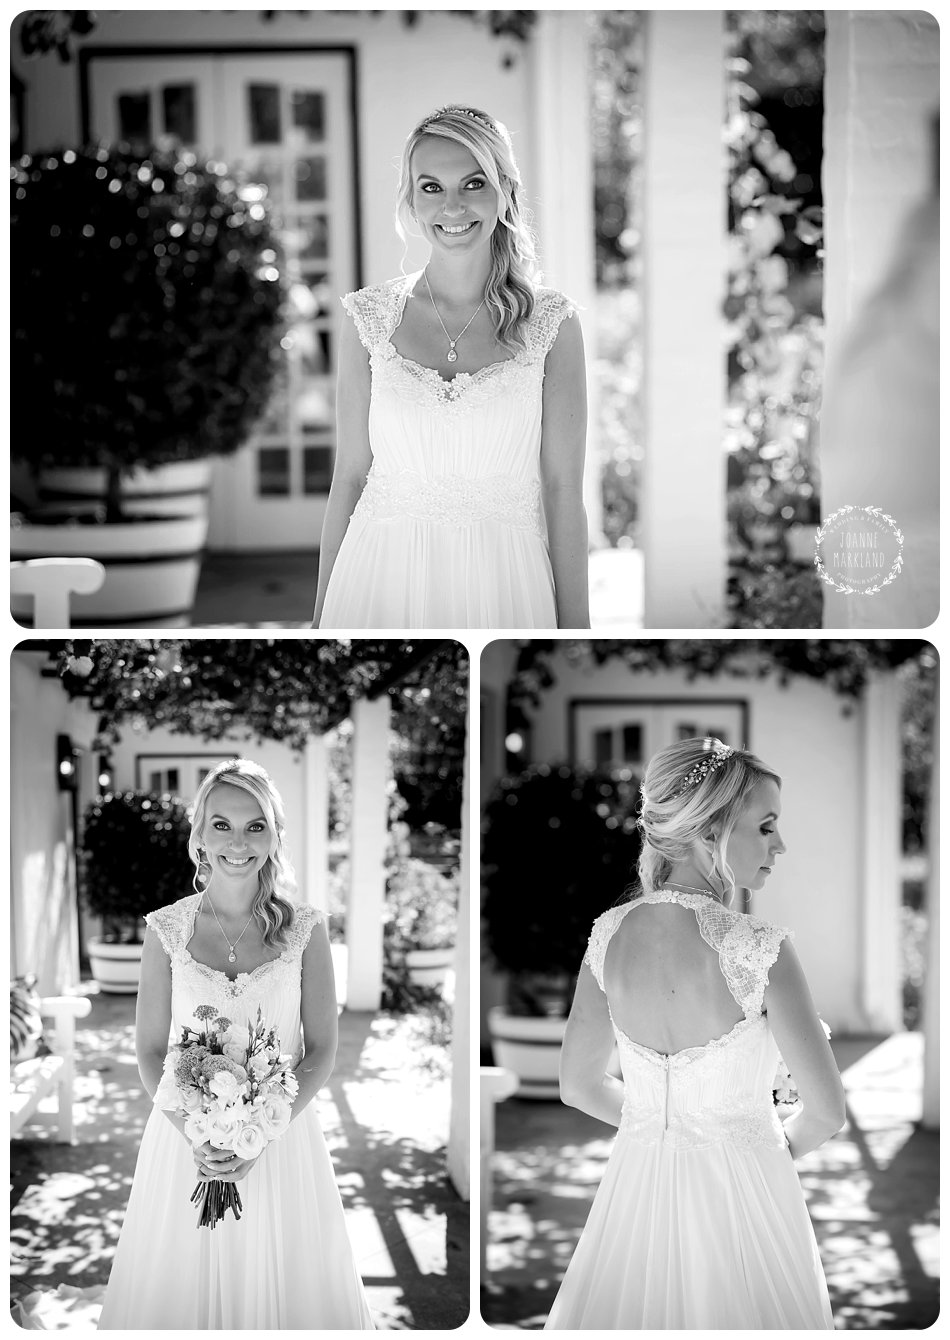 Steenberg_wedding_cape_town_photography_joanne_markland_photographer-016